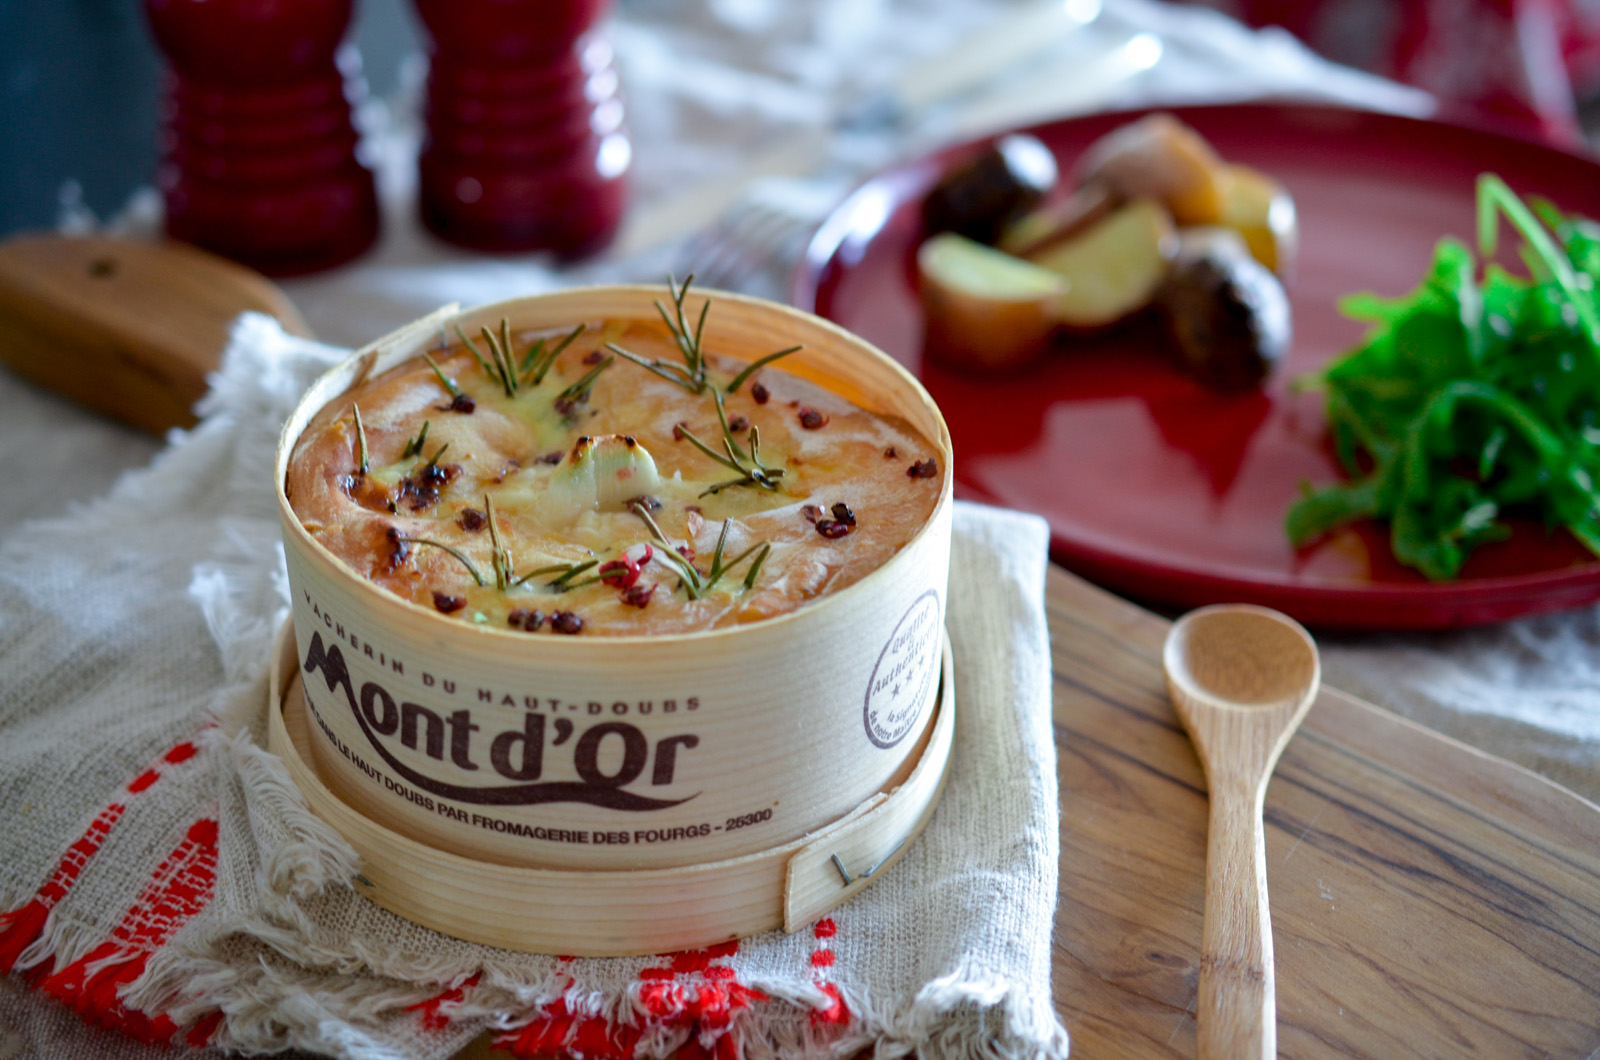 Vacherin Mont d'Or au four